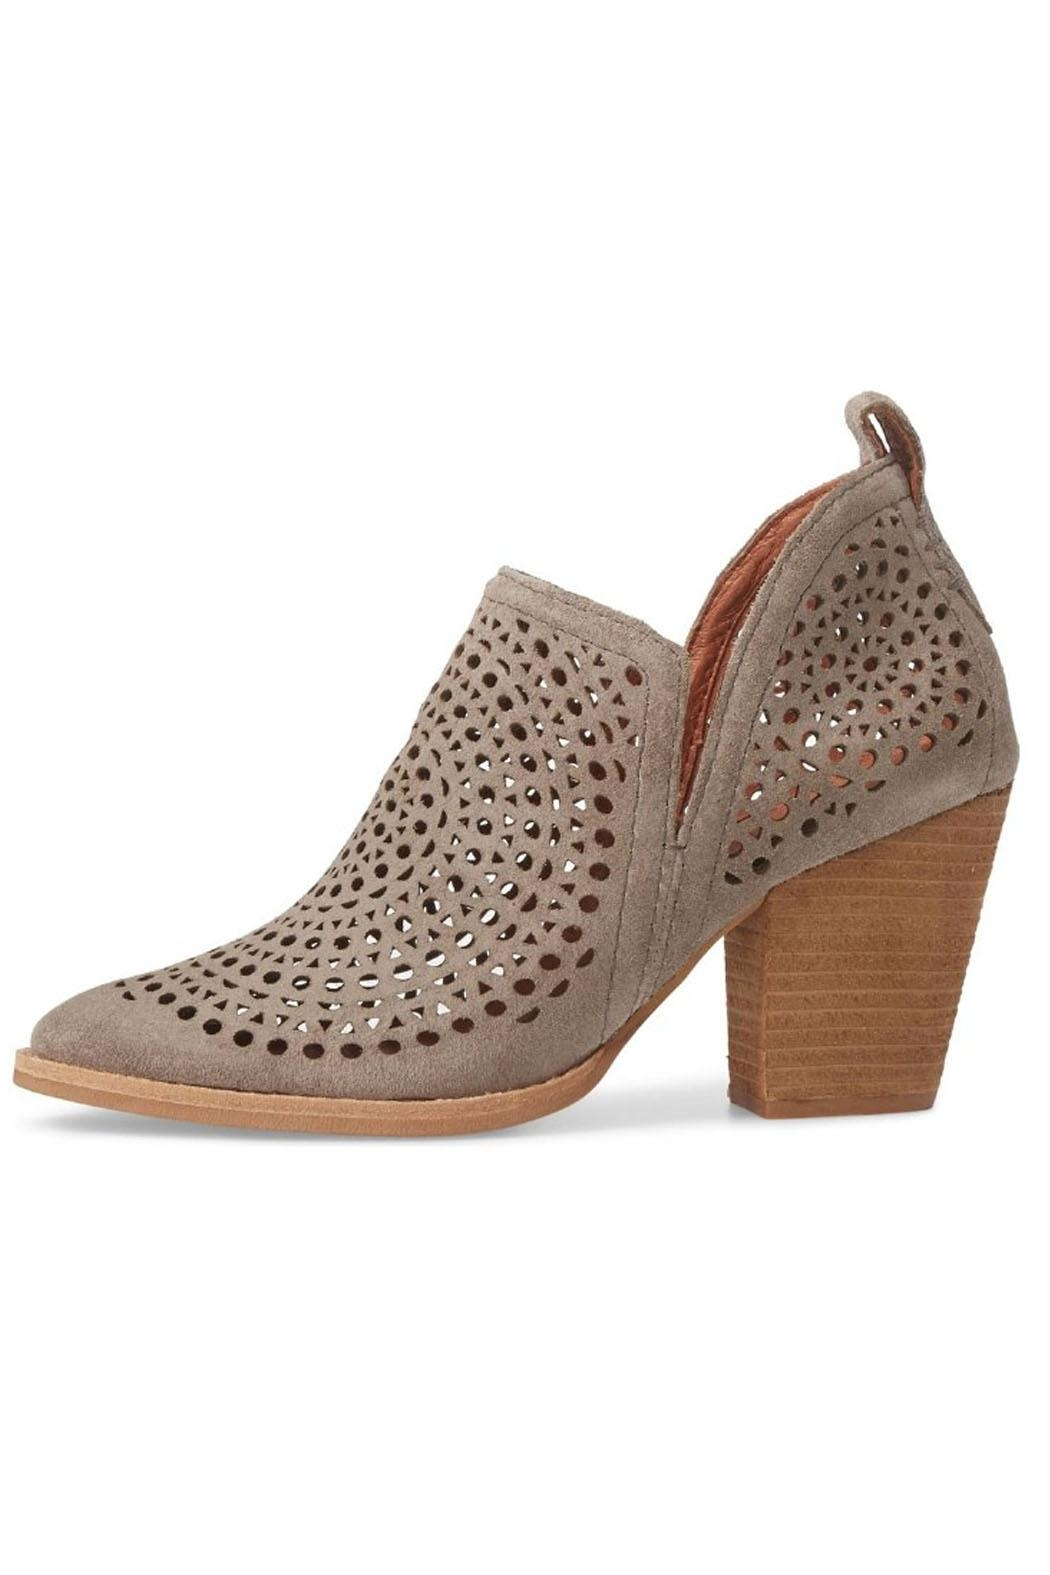 6c2b77fc763 Jeffrey Campbell Taupe Perforated Booties from South Carolina by ...